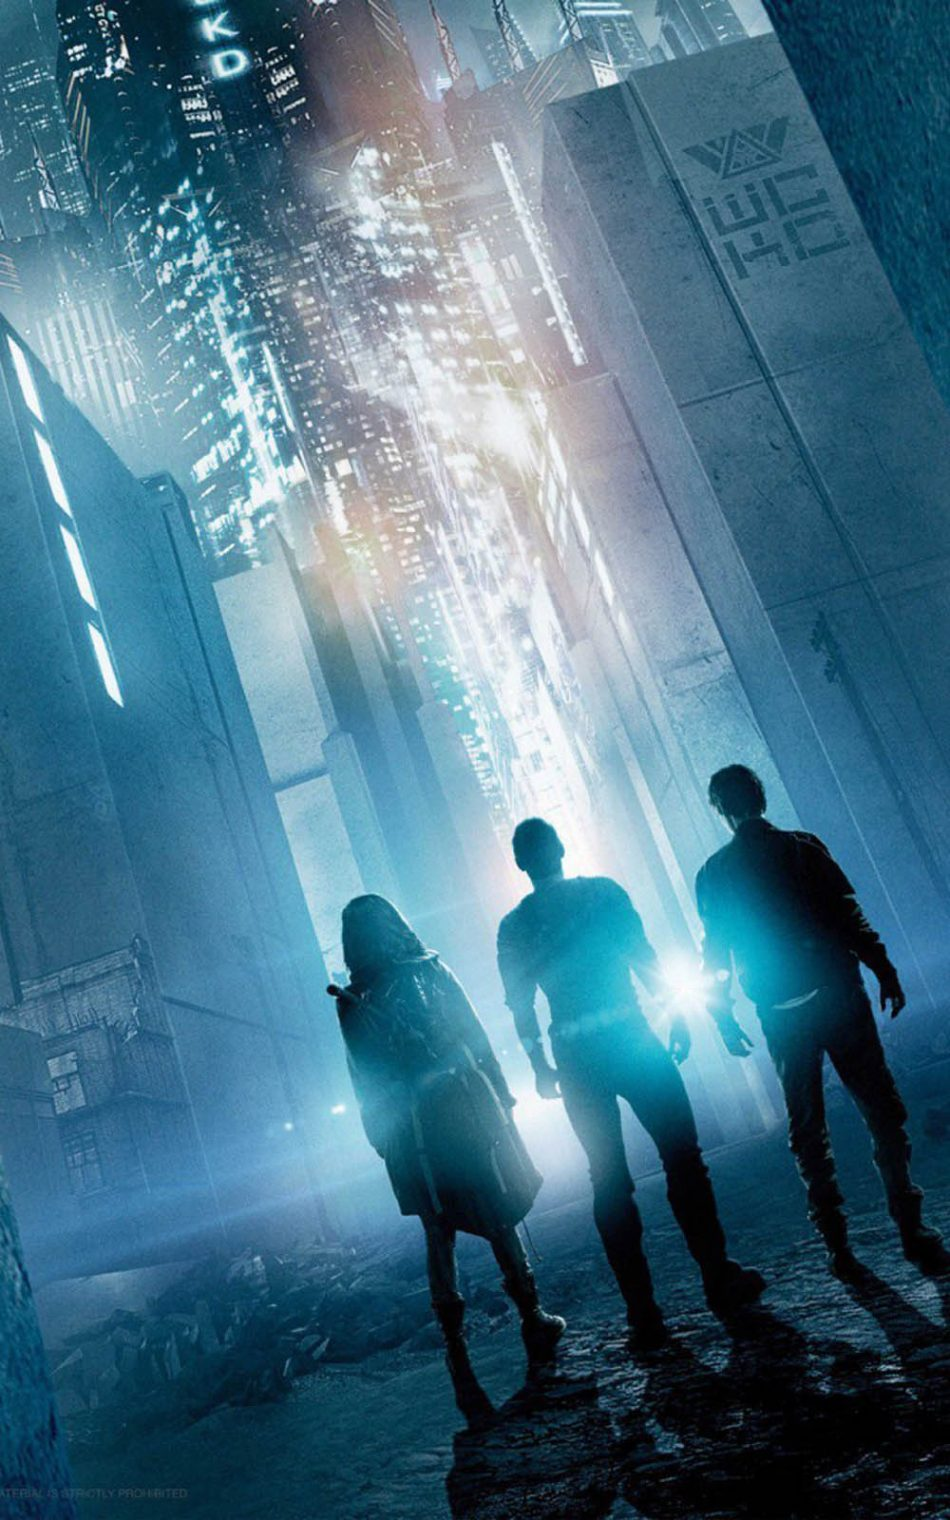 4k Anime Girl Wallpaper For Phones Download Maze Runner The Death Cure Free Pure 4k Ultra